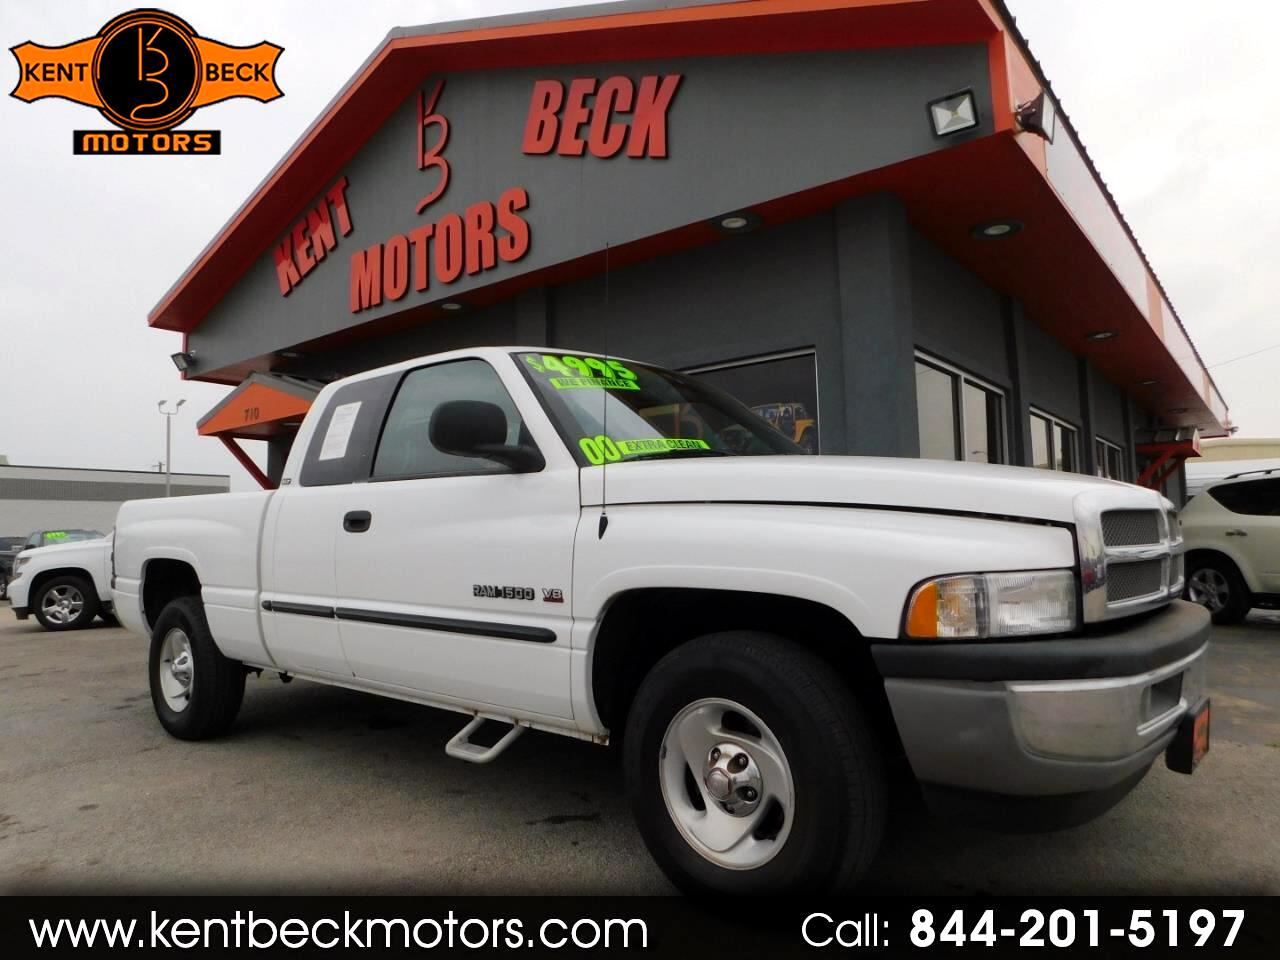 2000 Dodge Ram 1500 Quad Cab Short Bed 2WD